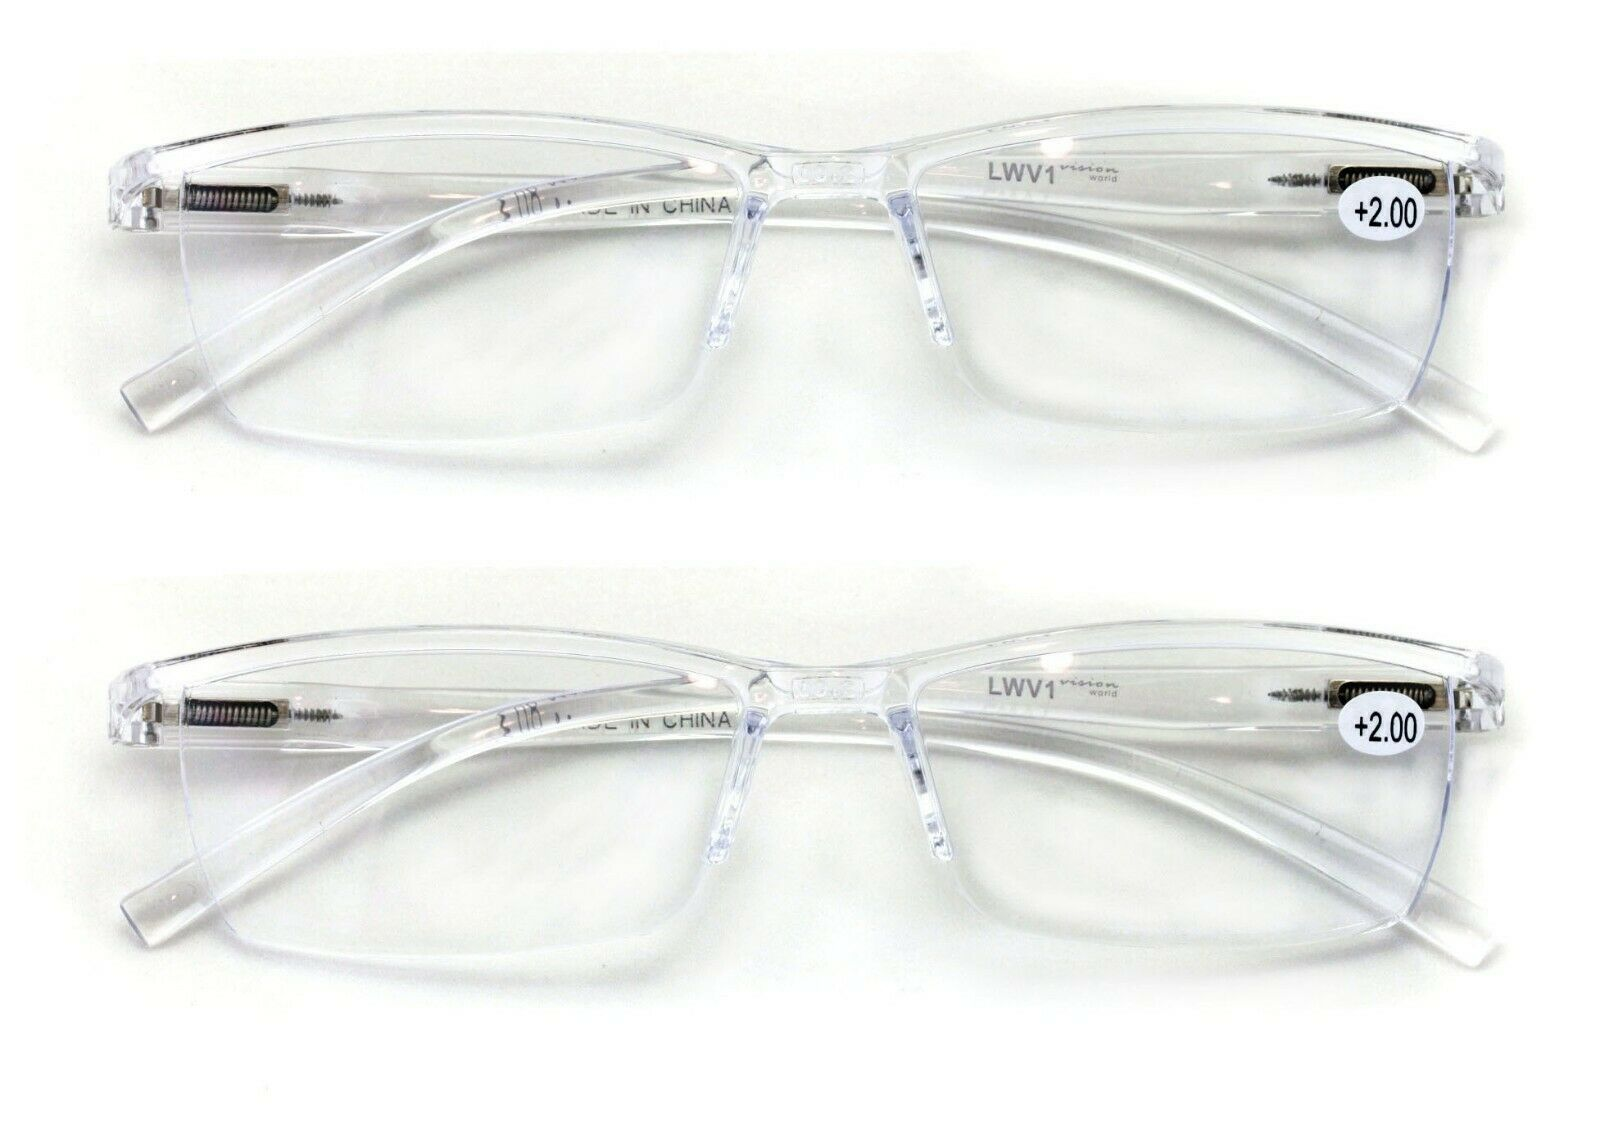 Sportex Readers 4060 Reading Glasses Ultra Lightweight Comfortable Stylis For Sale Online Ebay Find new and preloved sportex items at up to 70% off retail prices. 2 pairs lightweight transparent frame clear rectangular readers reading glasses